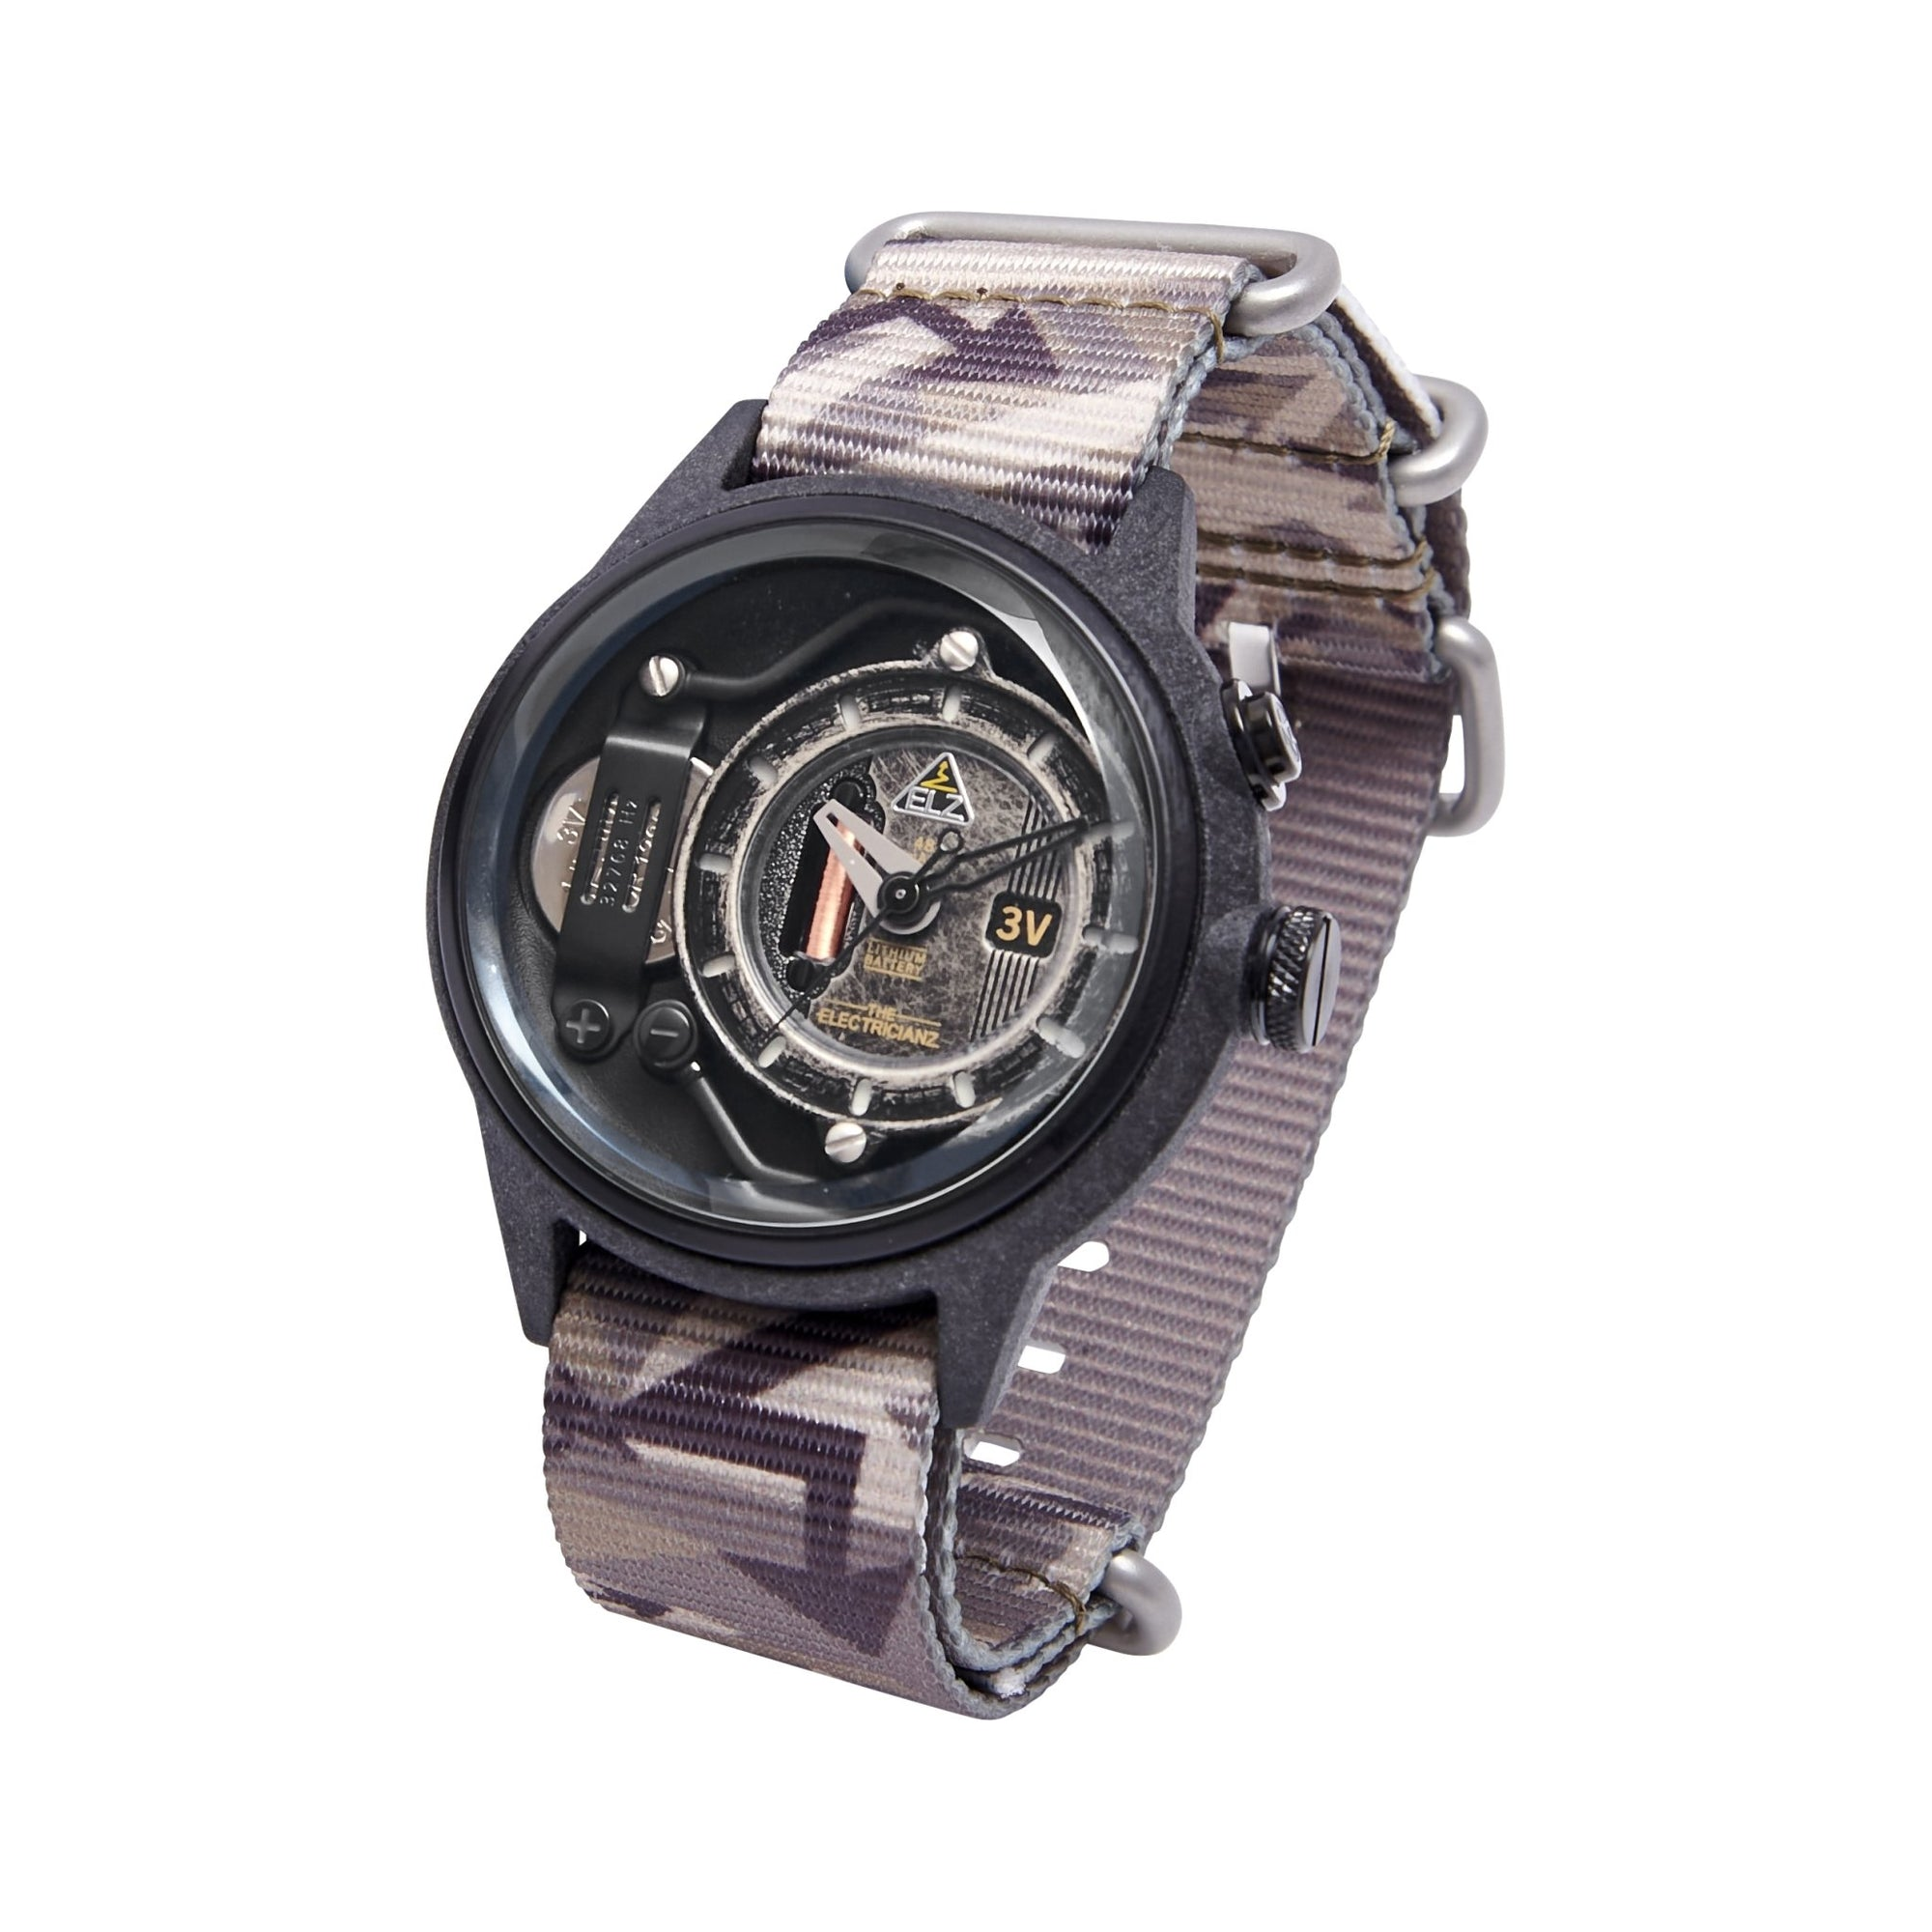 The Electricianz Nylon The Blackout Camoz - Watches & Crystals